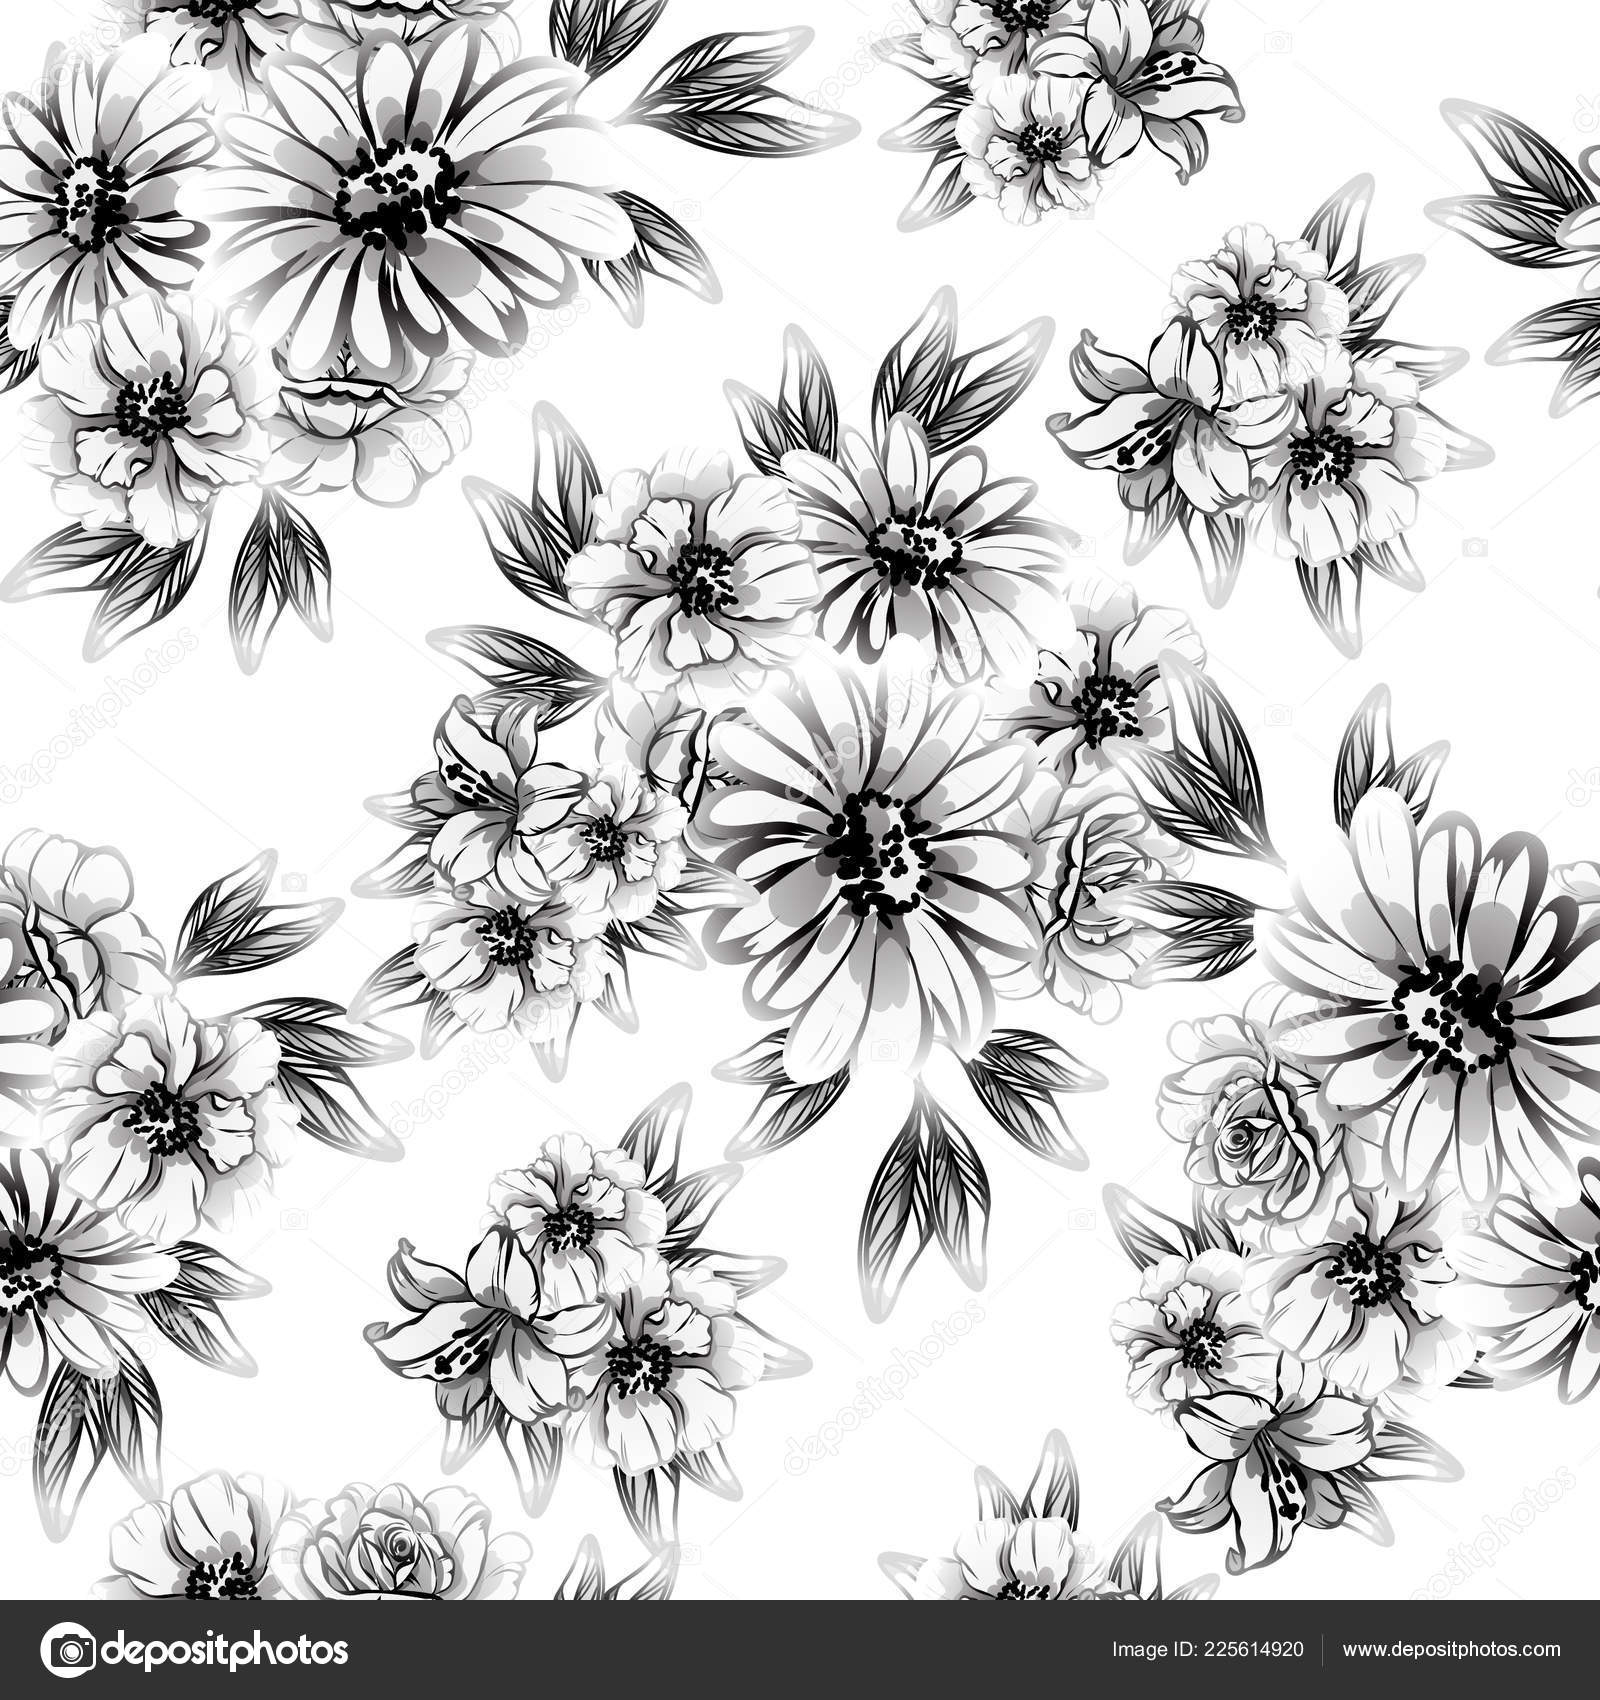 Seamless Vintage Style Flower Pattern Floral Elements Black White